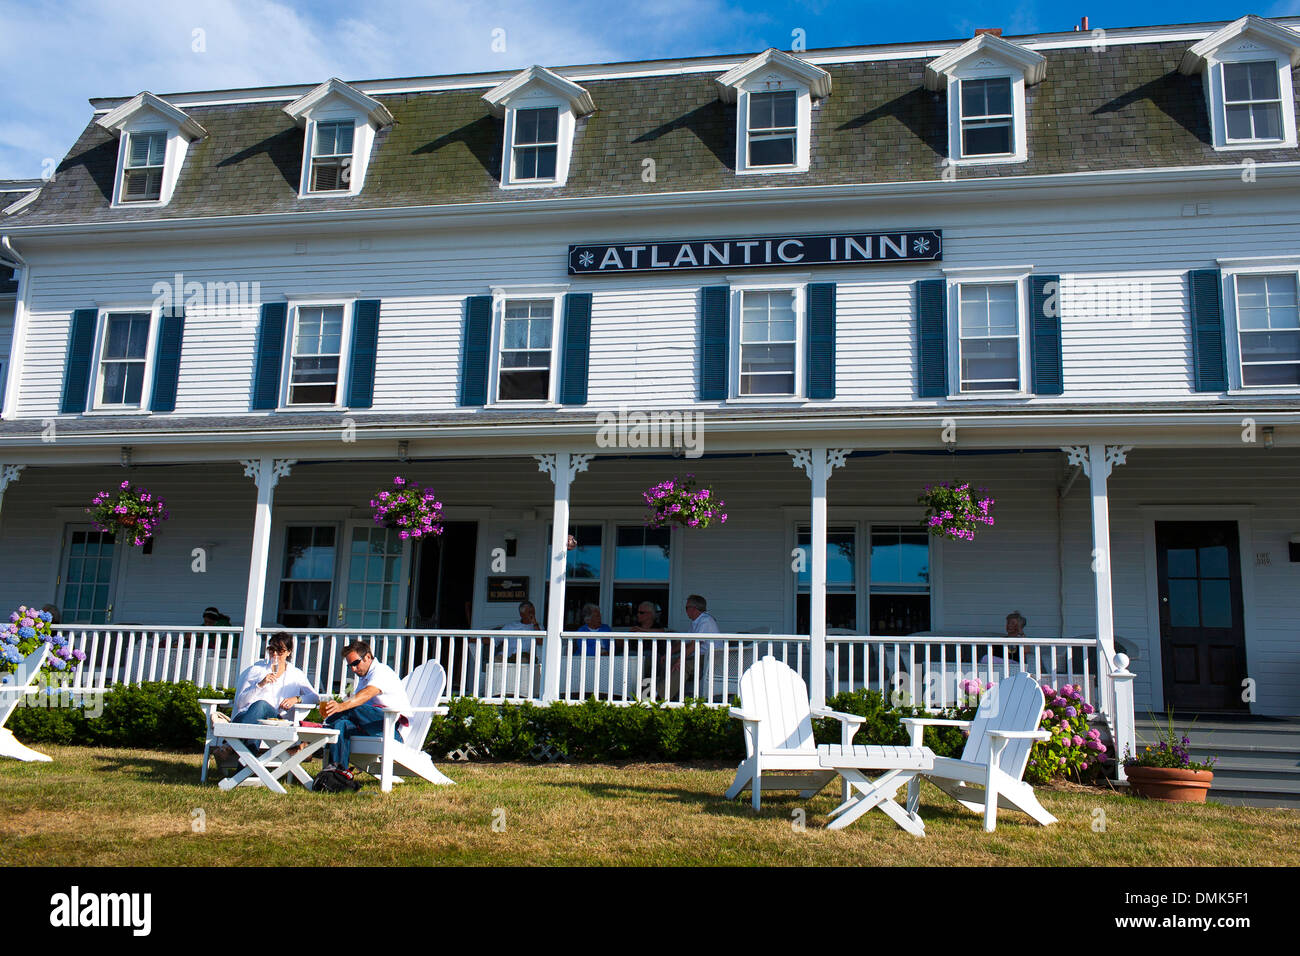 A young couple drink and eat in front of the Atlantic Inn Hotel on Block Island, a popular tourism destination in Rhode Island - Stock Image